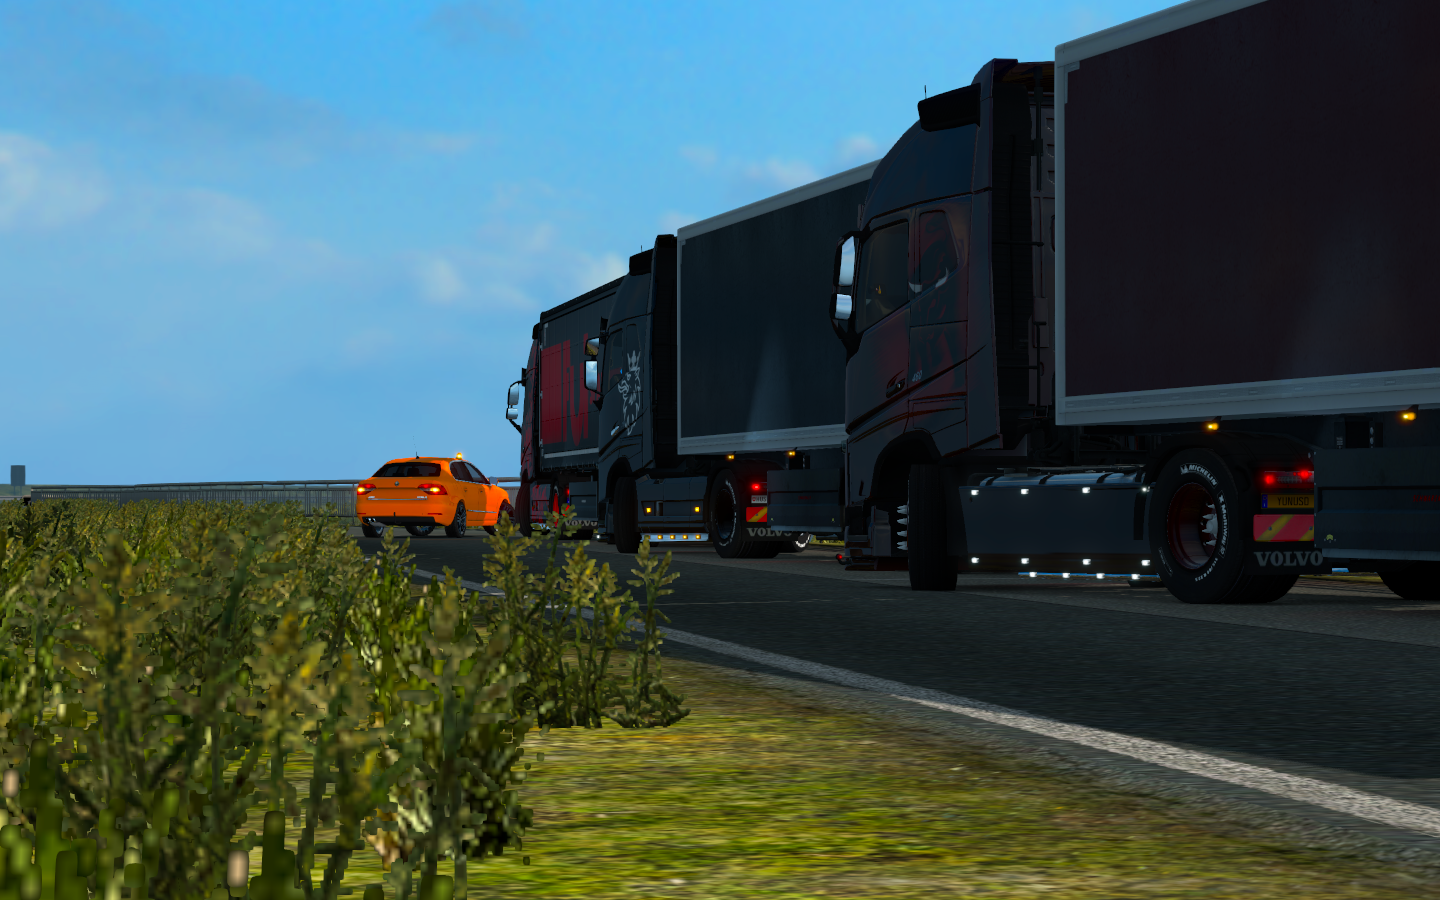 ets2_20190127_233503_00.png